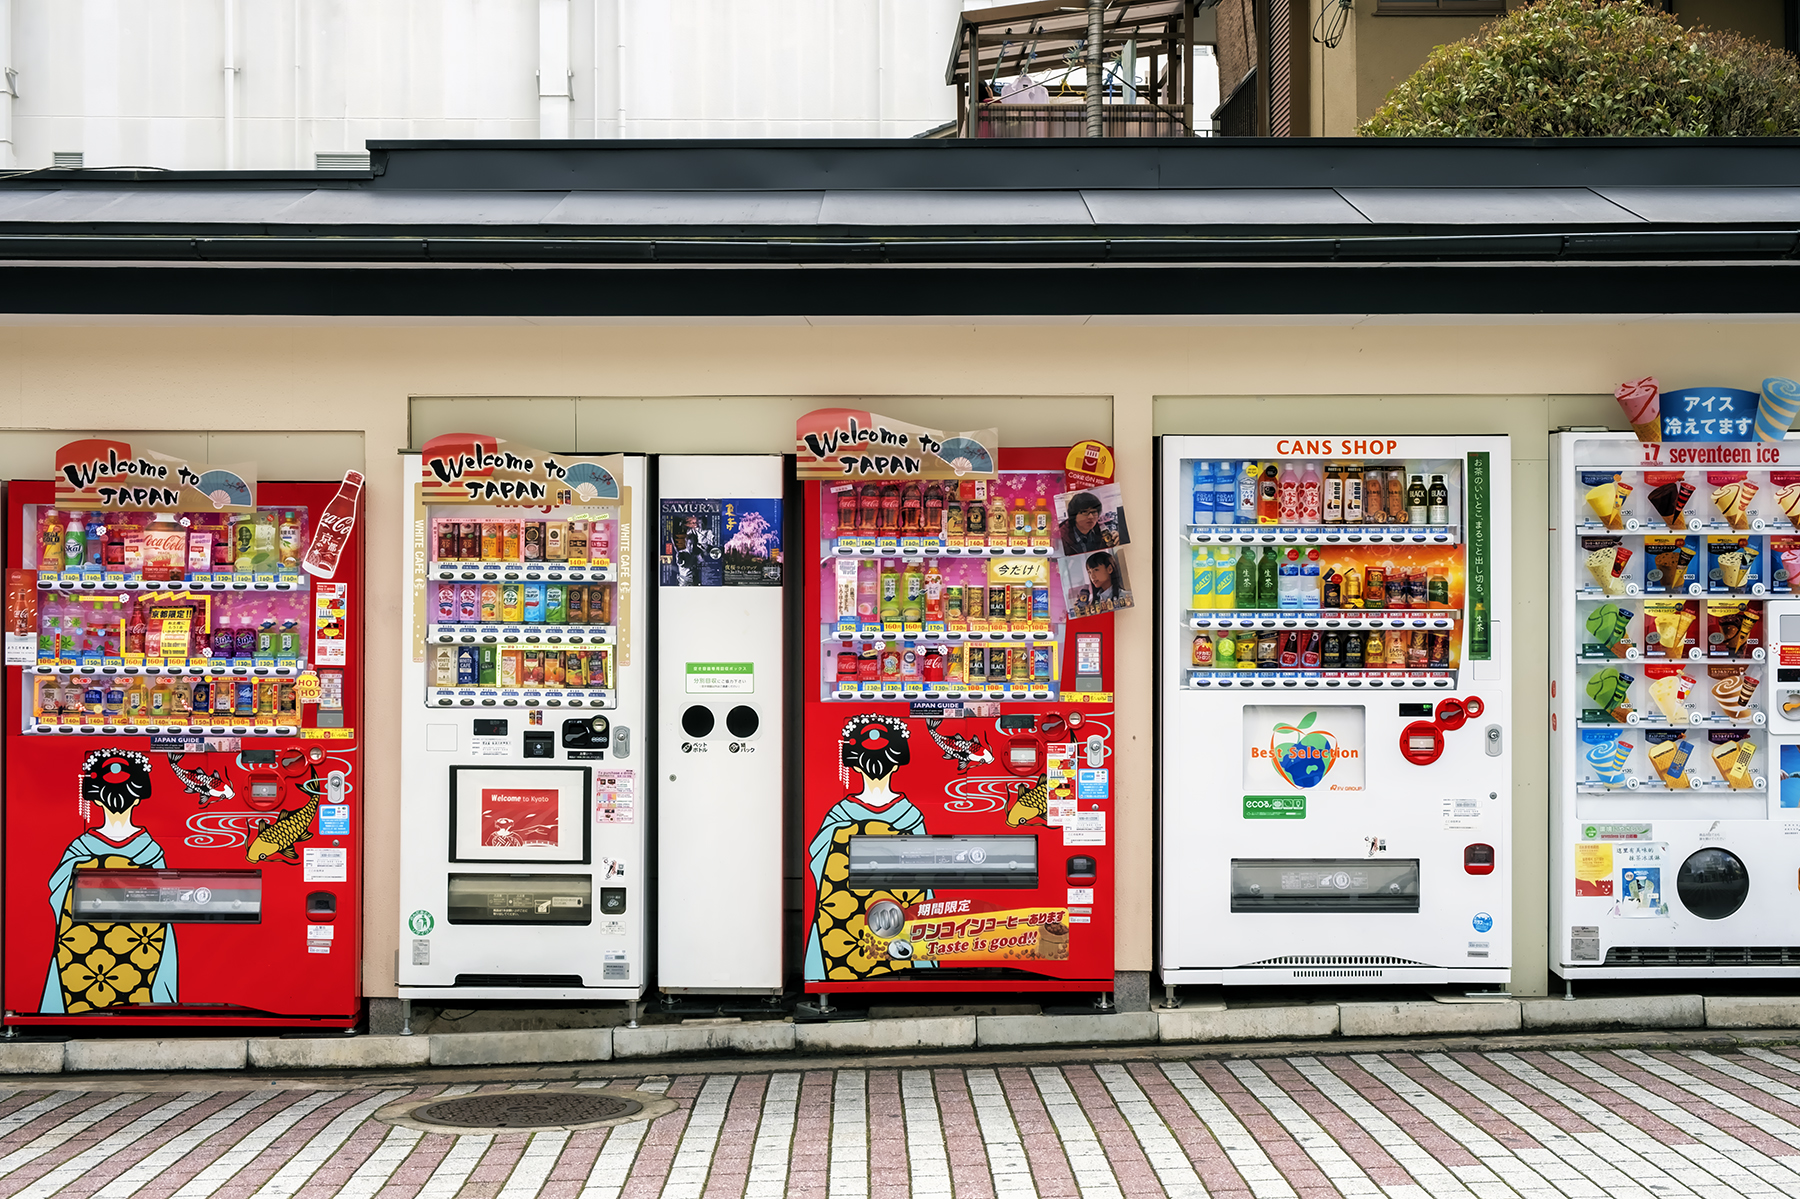 Doug_Caplan_Japanese-Vending-Machines_Untitled_02.jpg